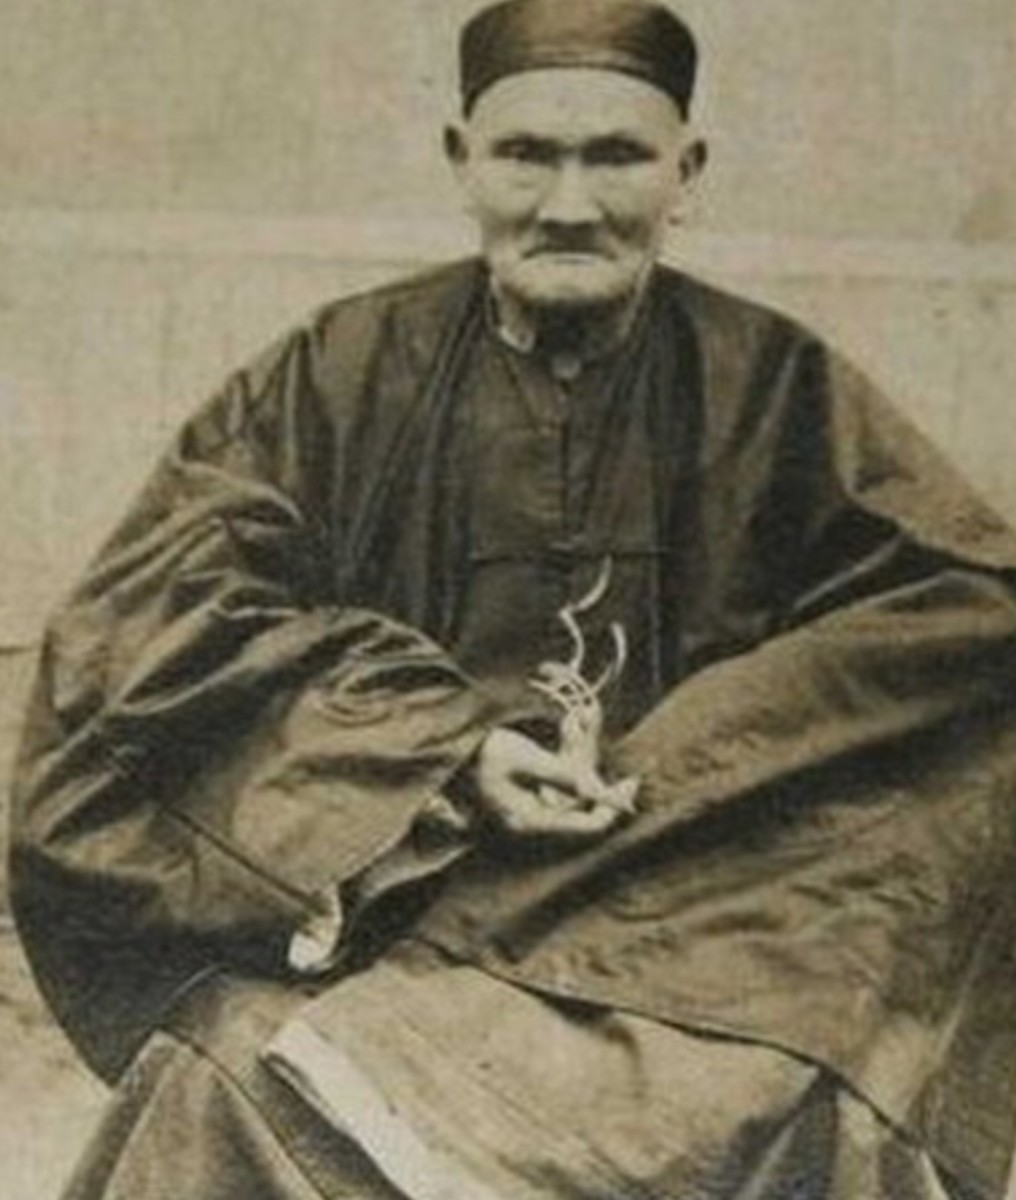 The incredible story of Li Ching-Yuen, a martial art expert and an herbalist who lived for over 256 years.